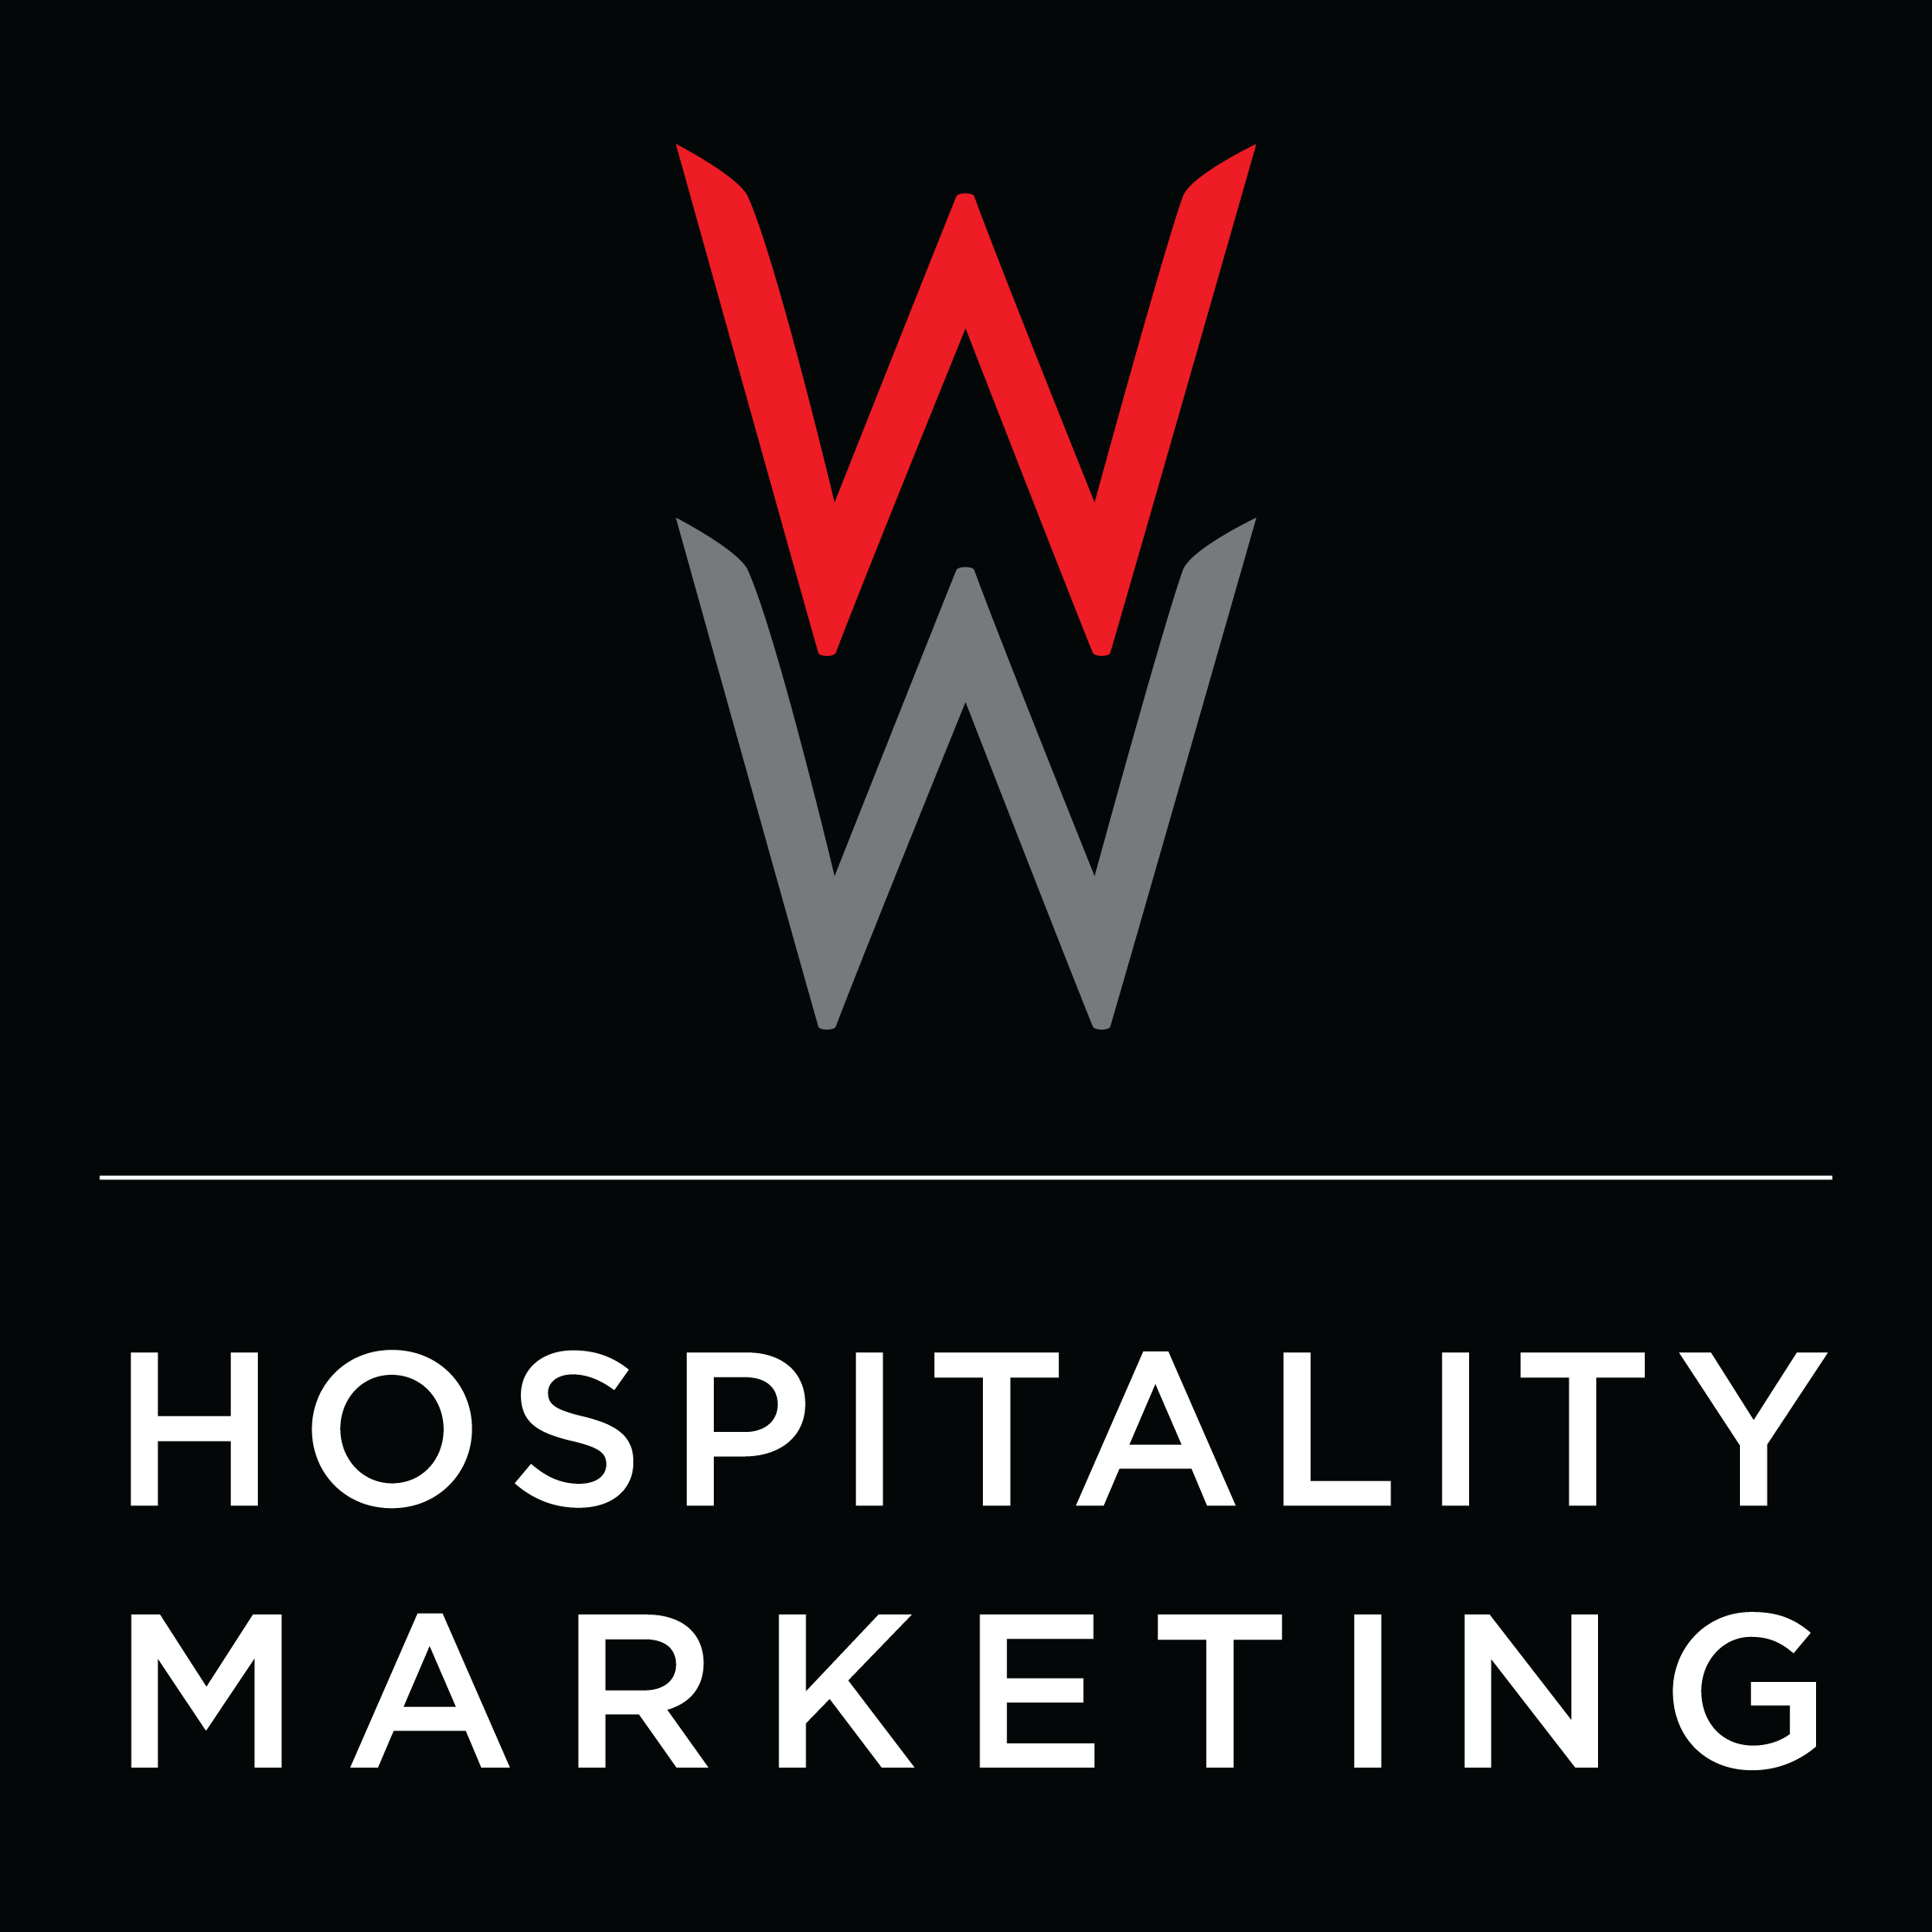 WW Hospitality Marketing